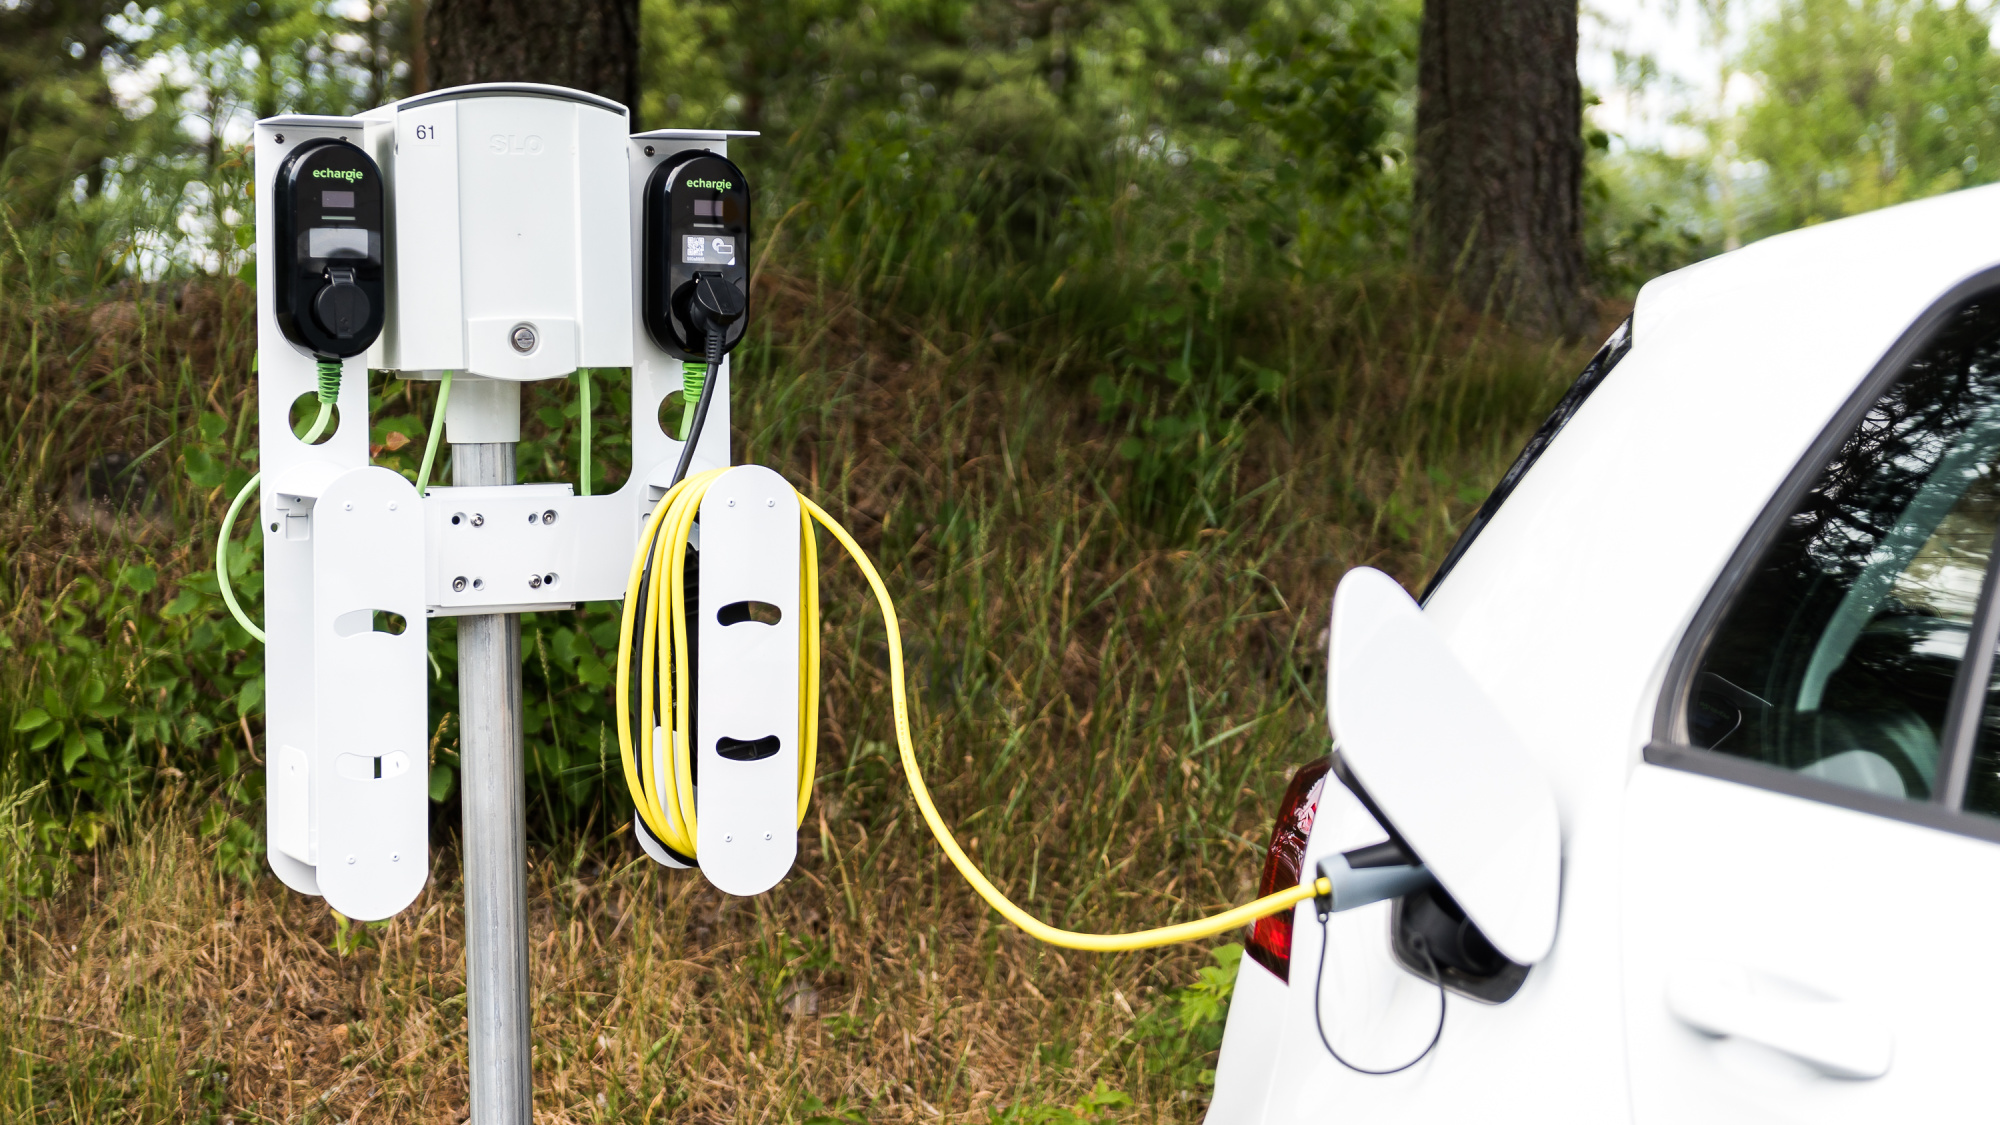 eChargie can be installed to any public or semi-public power plug and used to charge electric cars, bikes, scooters, even laptops and smartphones.